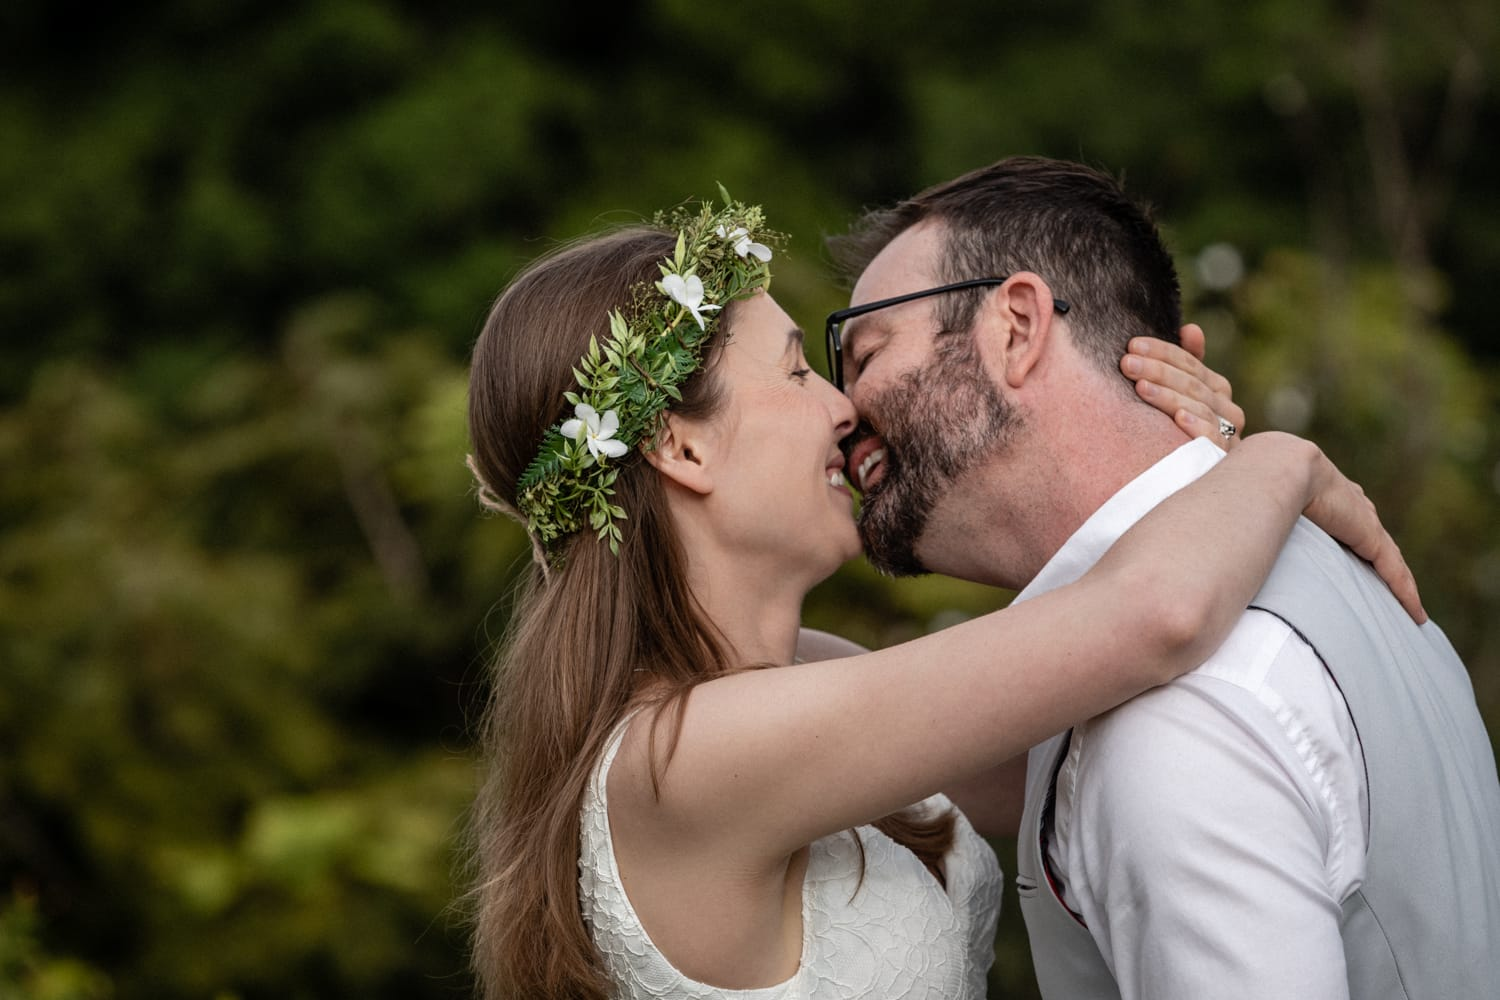 Couple getting married in tropical garden kisses.